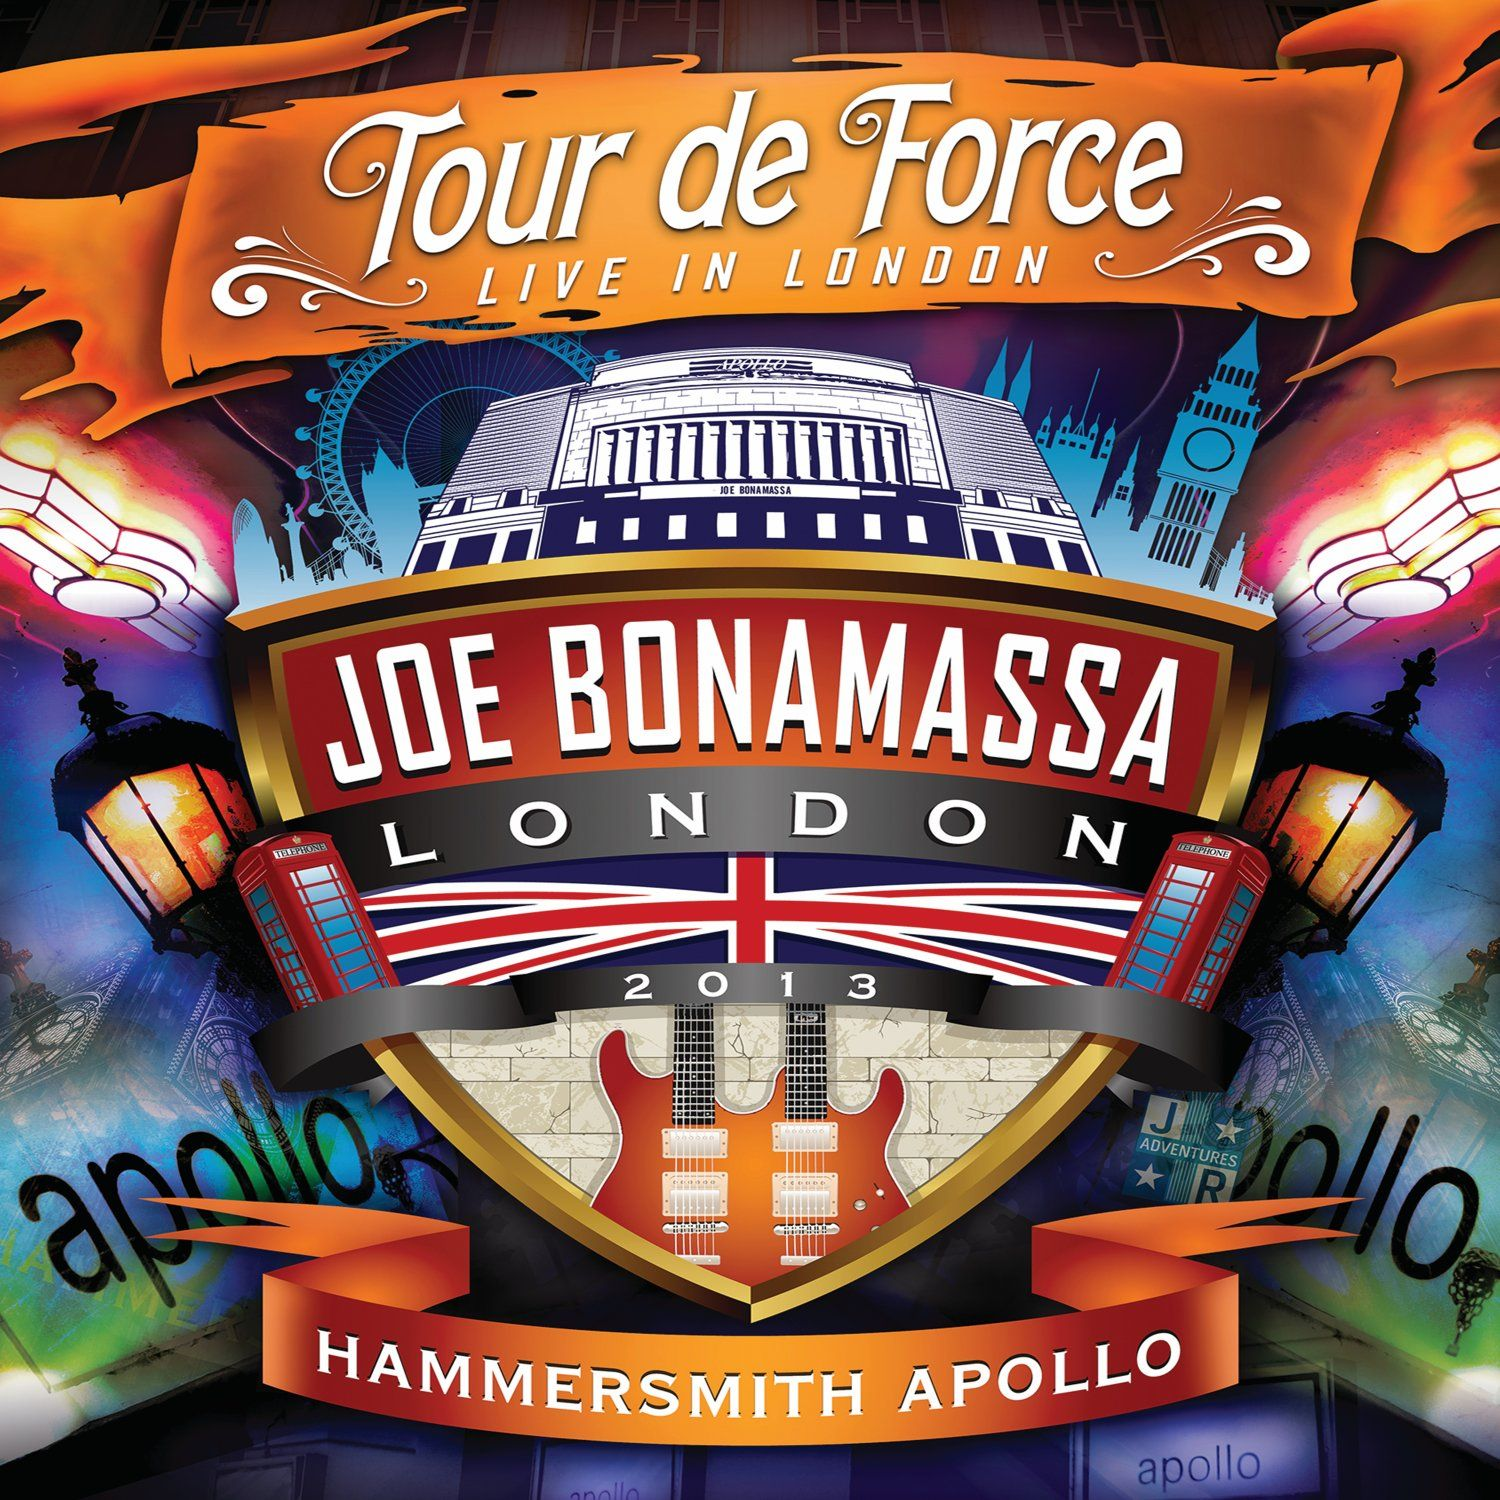 Joe Bonamassa: Tour de Force - Live in London, Hammersmith Apollo